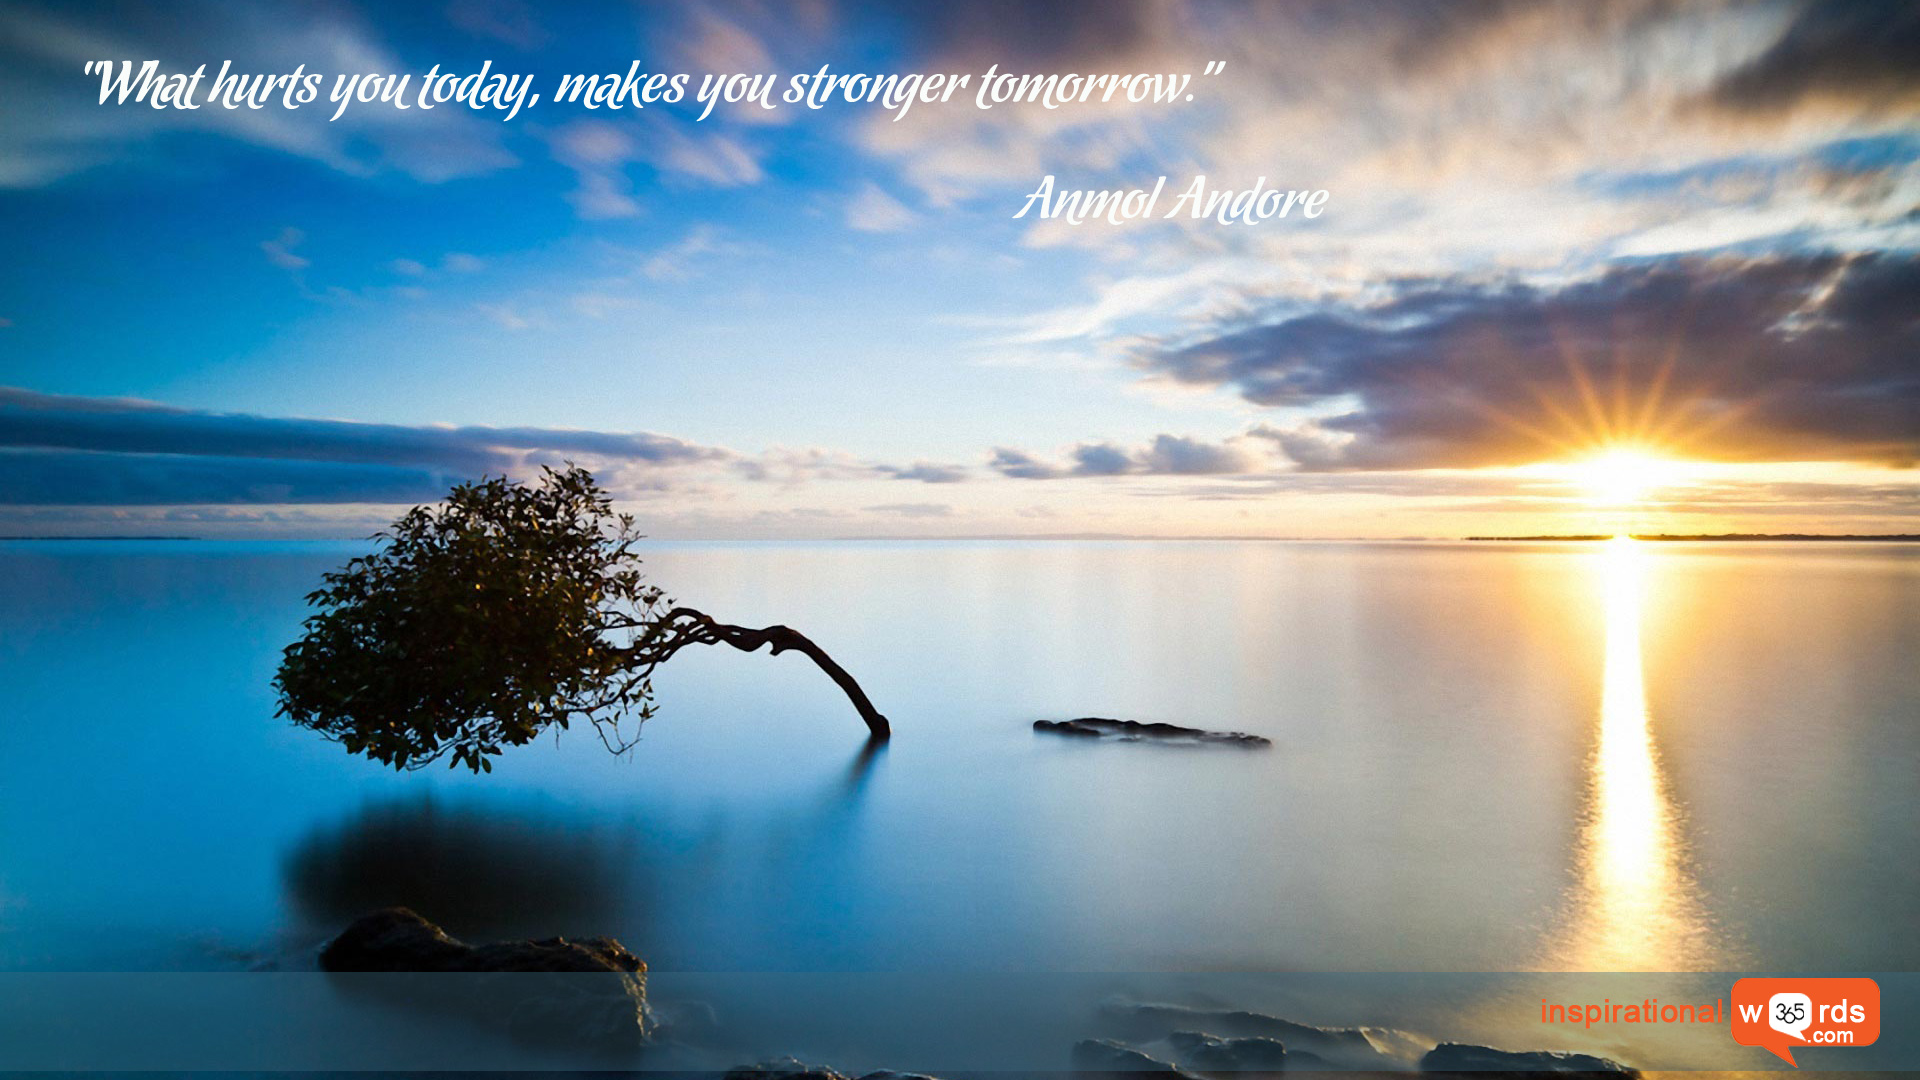 Inspirational Wallpaper Quote by Anmol Andore